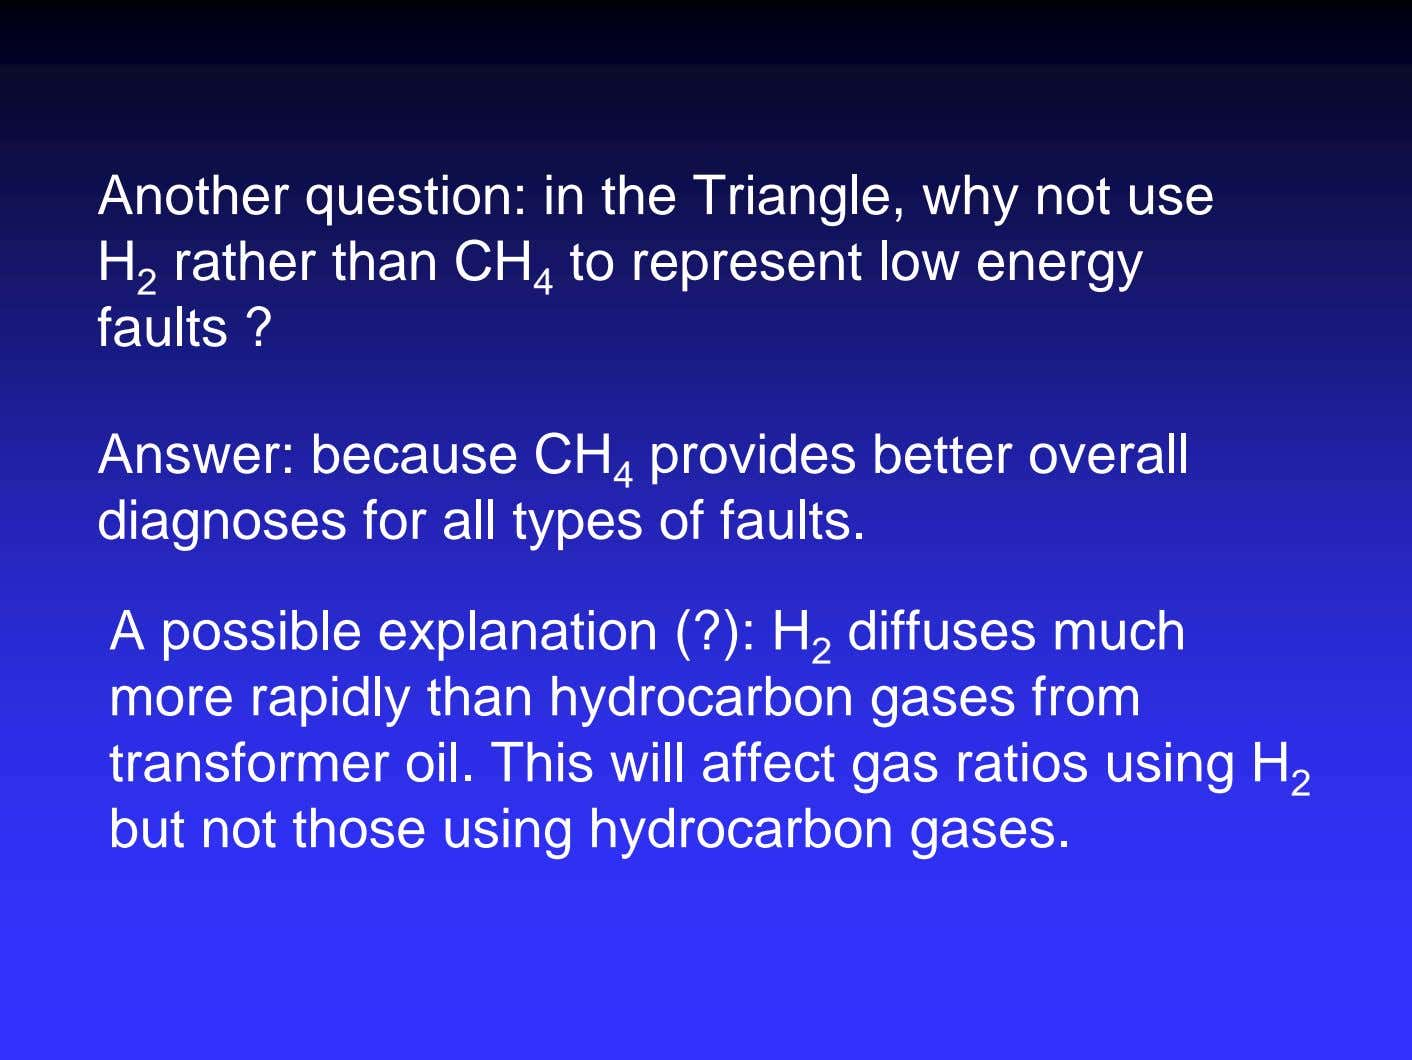 Another question: in the Triangle, why not use H 2 rather than CH 4 to